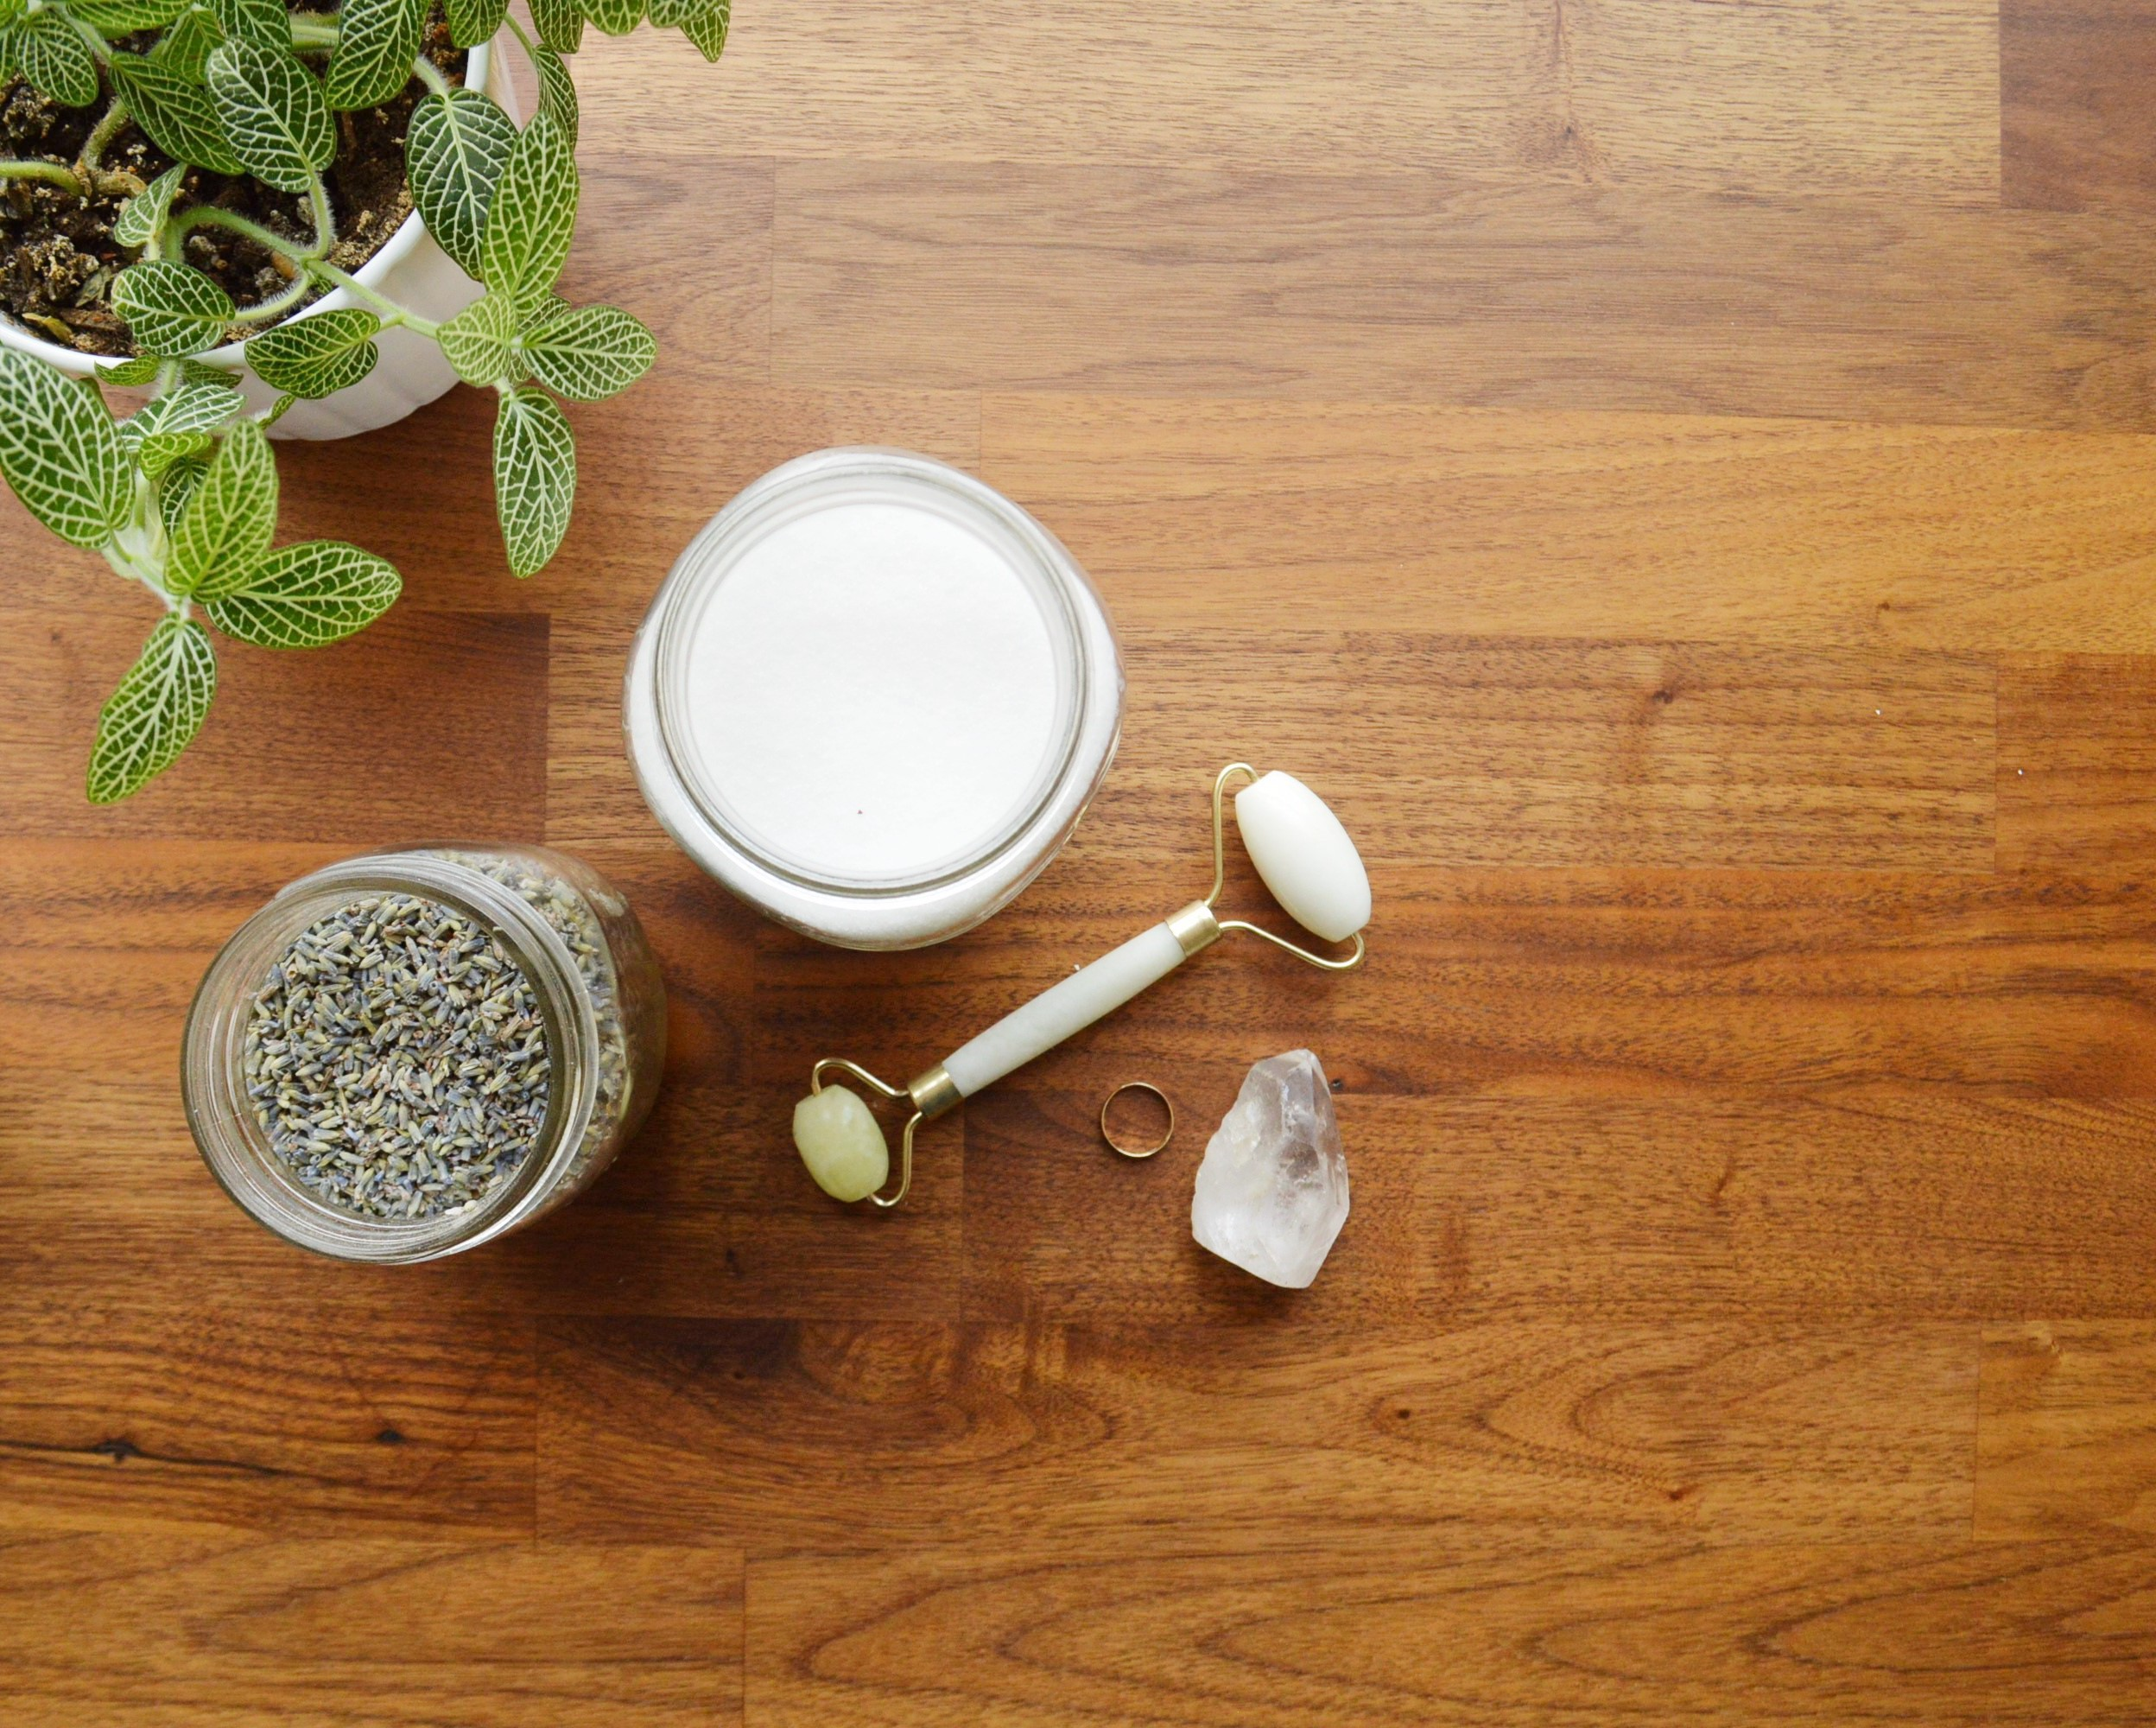 Zero Waste Green Beauty Products You Can Make Yourself